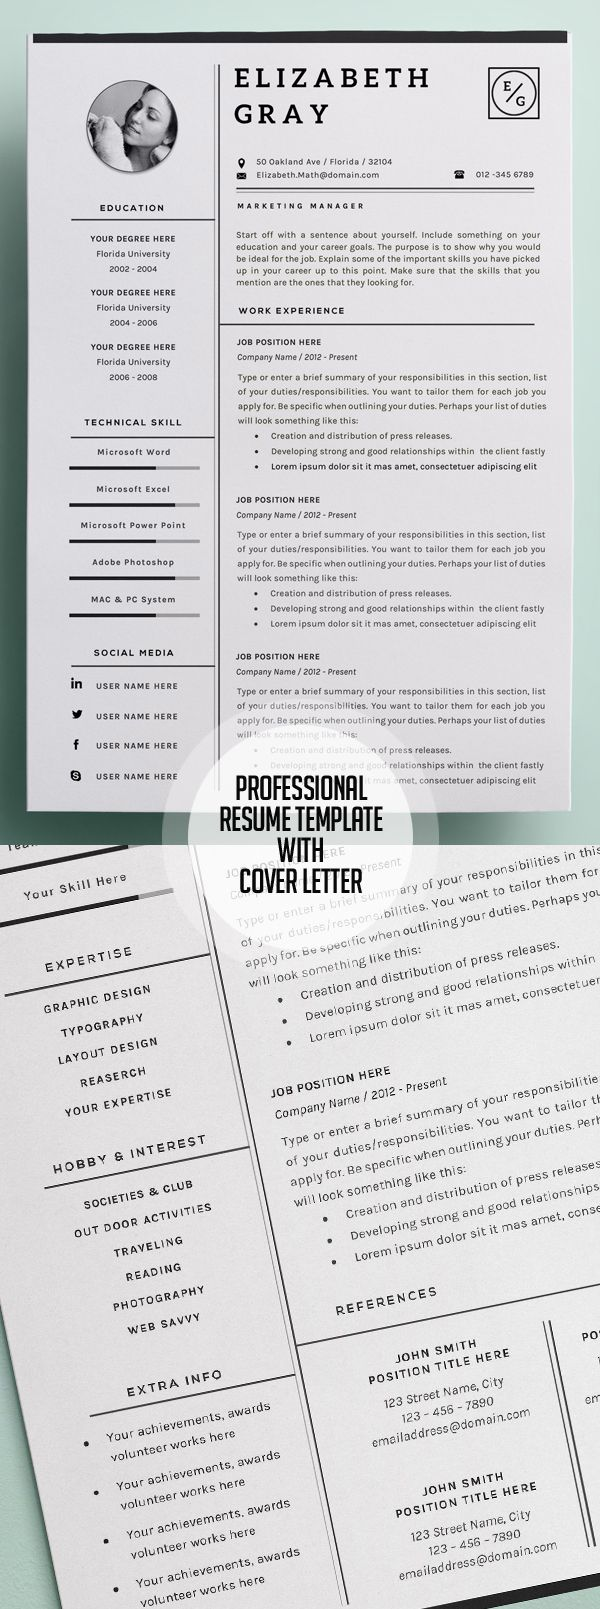 Opposenewapstandardsus  Winning  Resume Ideas On Pinterest  Resume Resume Templates And  With Luxury Professional And Modern Resume Template With Page Cover Cvtemplate With Attractive Marketing Objective Resume Also Resume Design Ideas In Addition Resume Templates With Photo And Good Words For A Resume As Well As Computer Repair Resume Additionally Bank Teller Resumes From Pinterestcom With Opposenewapstandardsus  Luxury  Resume Ideas On Pinterest  Resume Resume Templates And  With Attractive Professional And Modern Resume Template With Page Cover Cvtemplate And Winning Marketing Objective Resume Also Resume Design Ideas In Addition Resume Templates With Photo From Pinterestcom